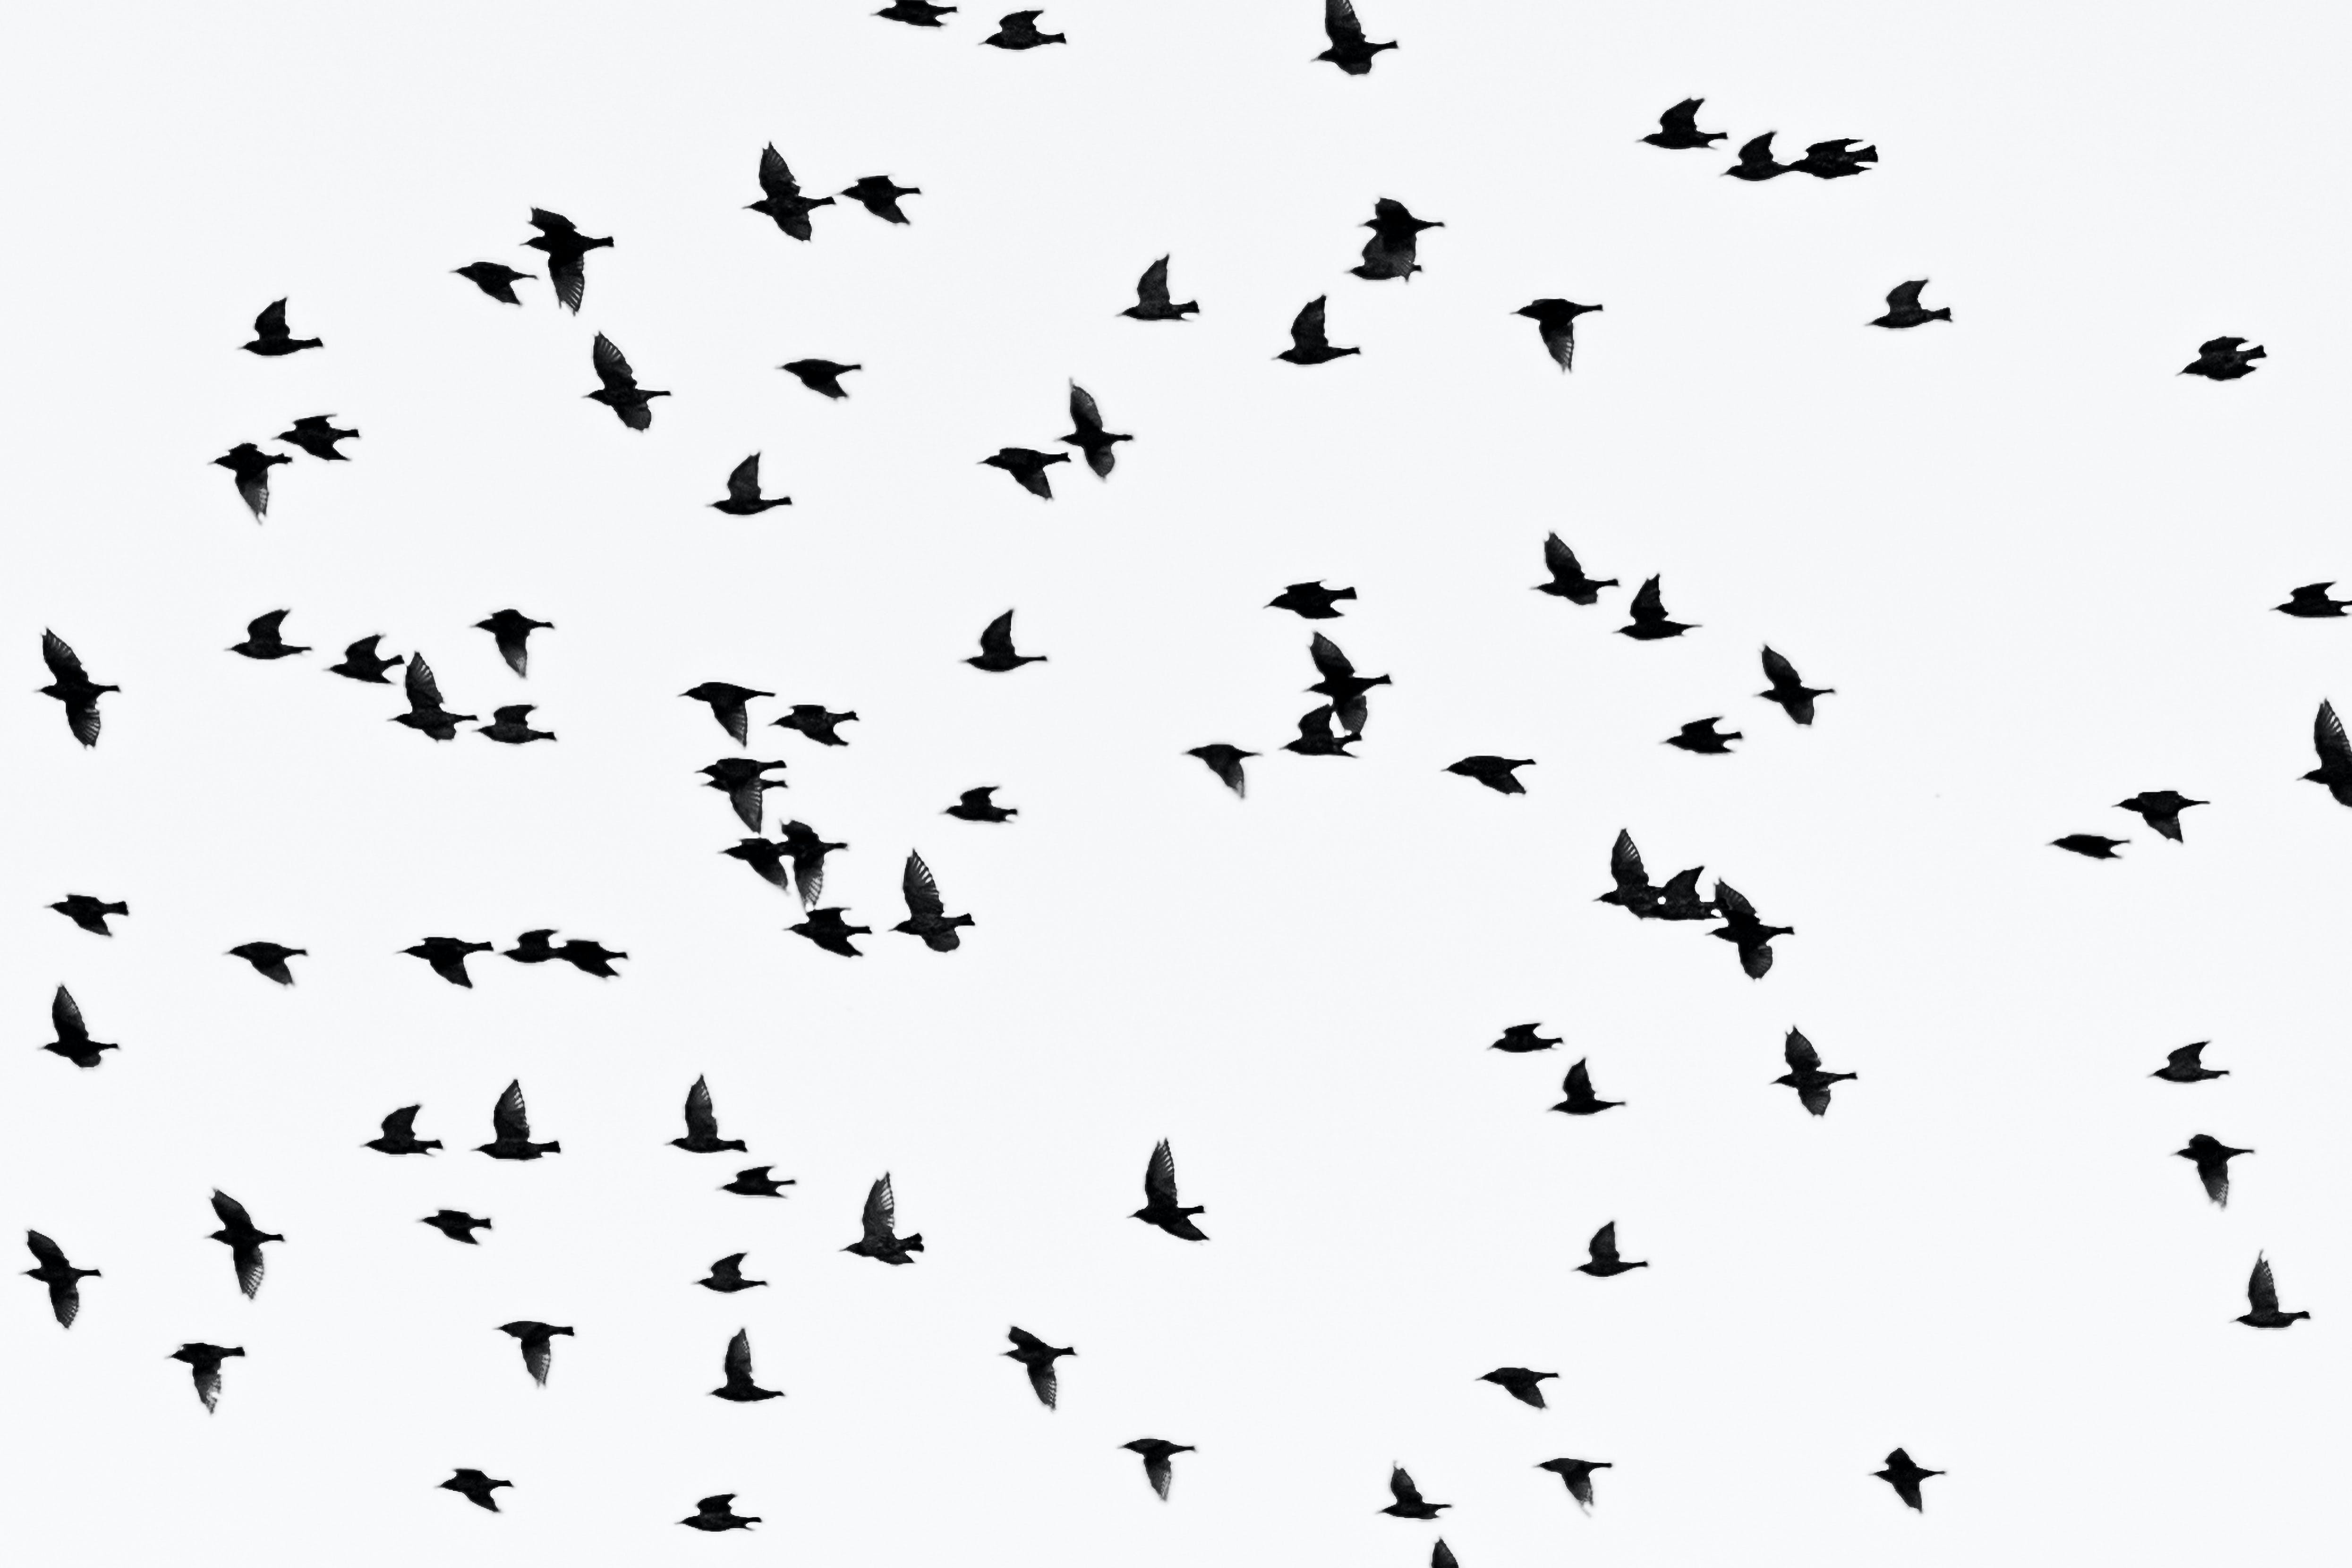 Low Angle Photography of Flock of Flying Birds